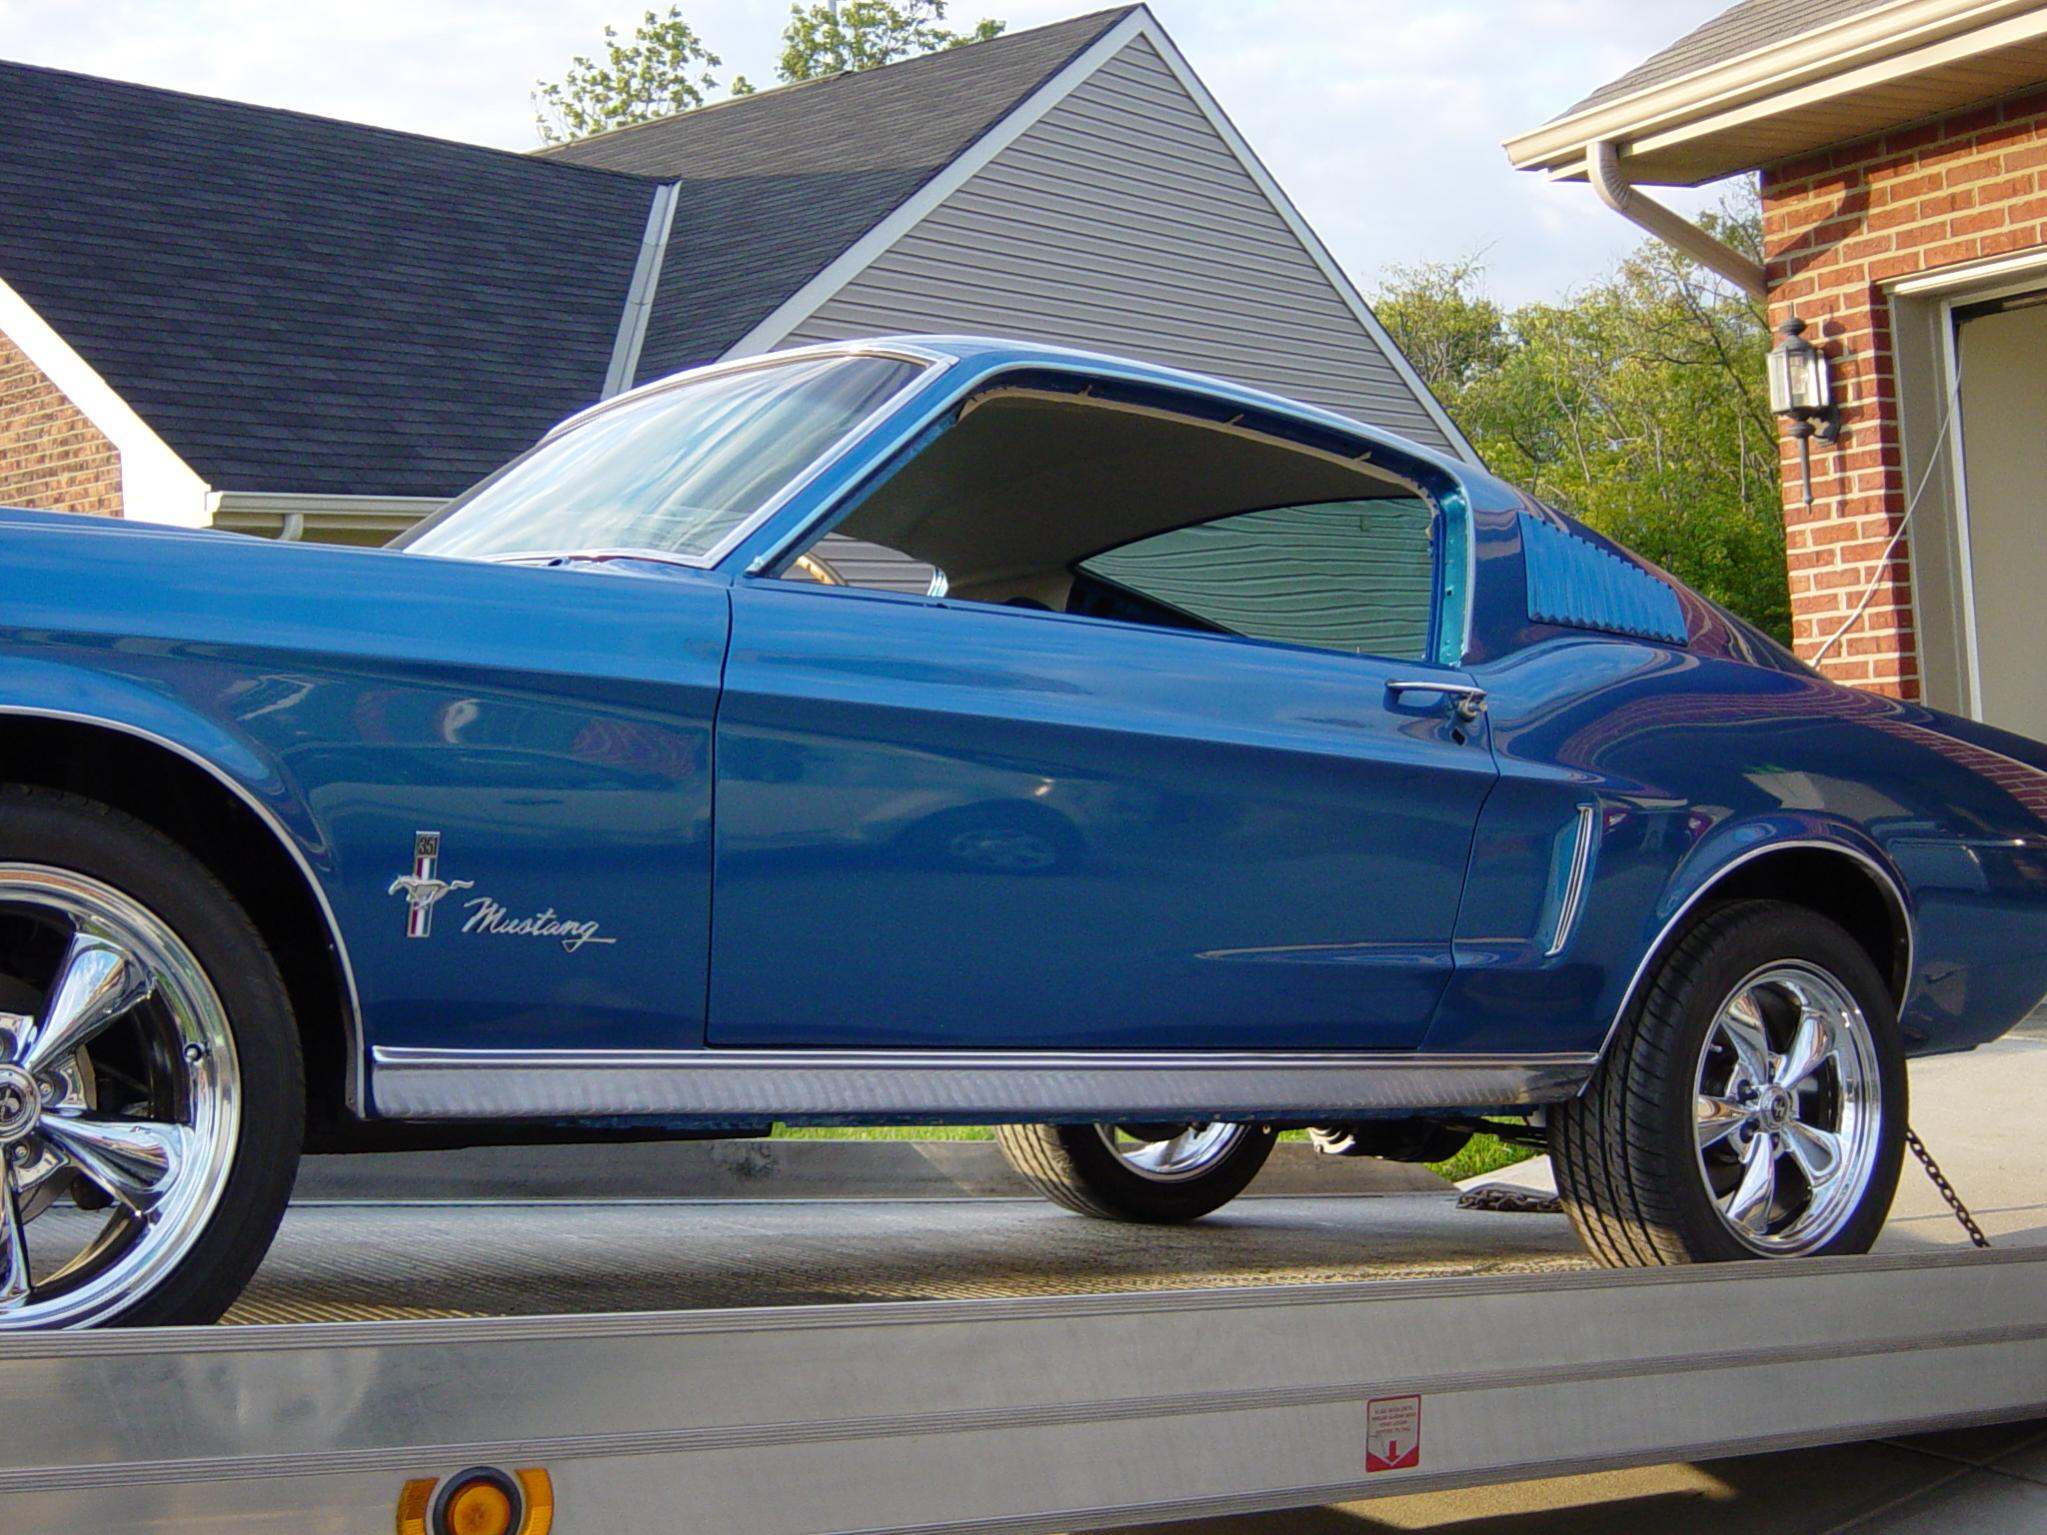 Ford mustang fastback 1968 in ebay motors for Ebay motors mustang gt